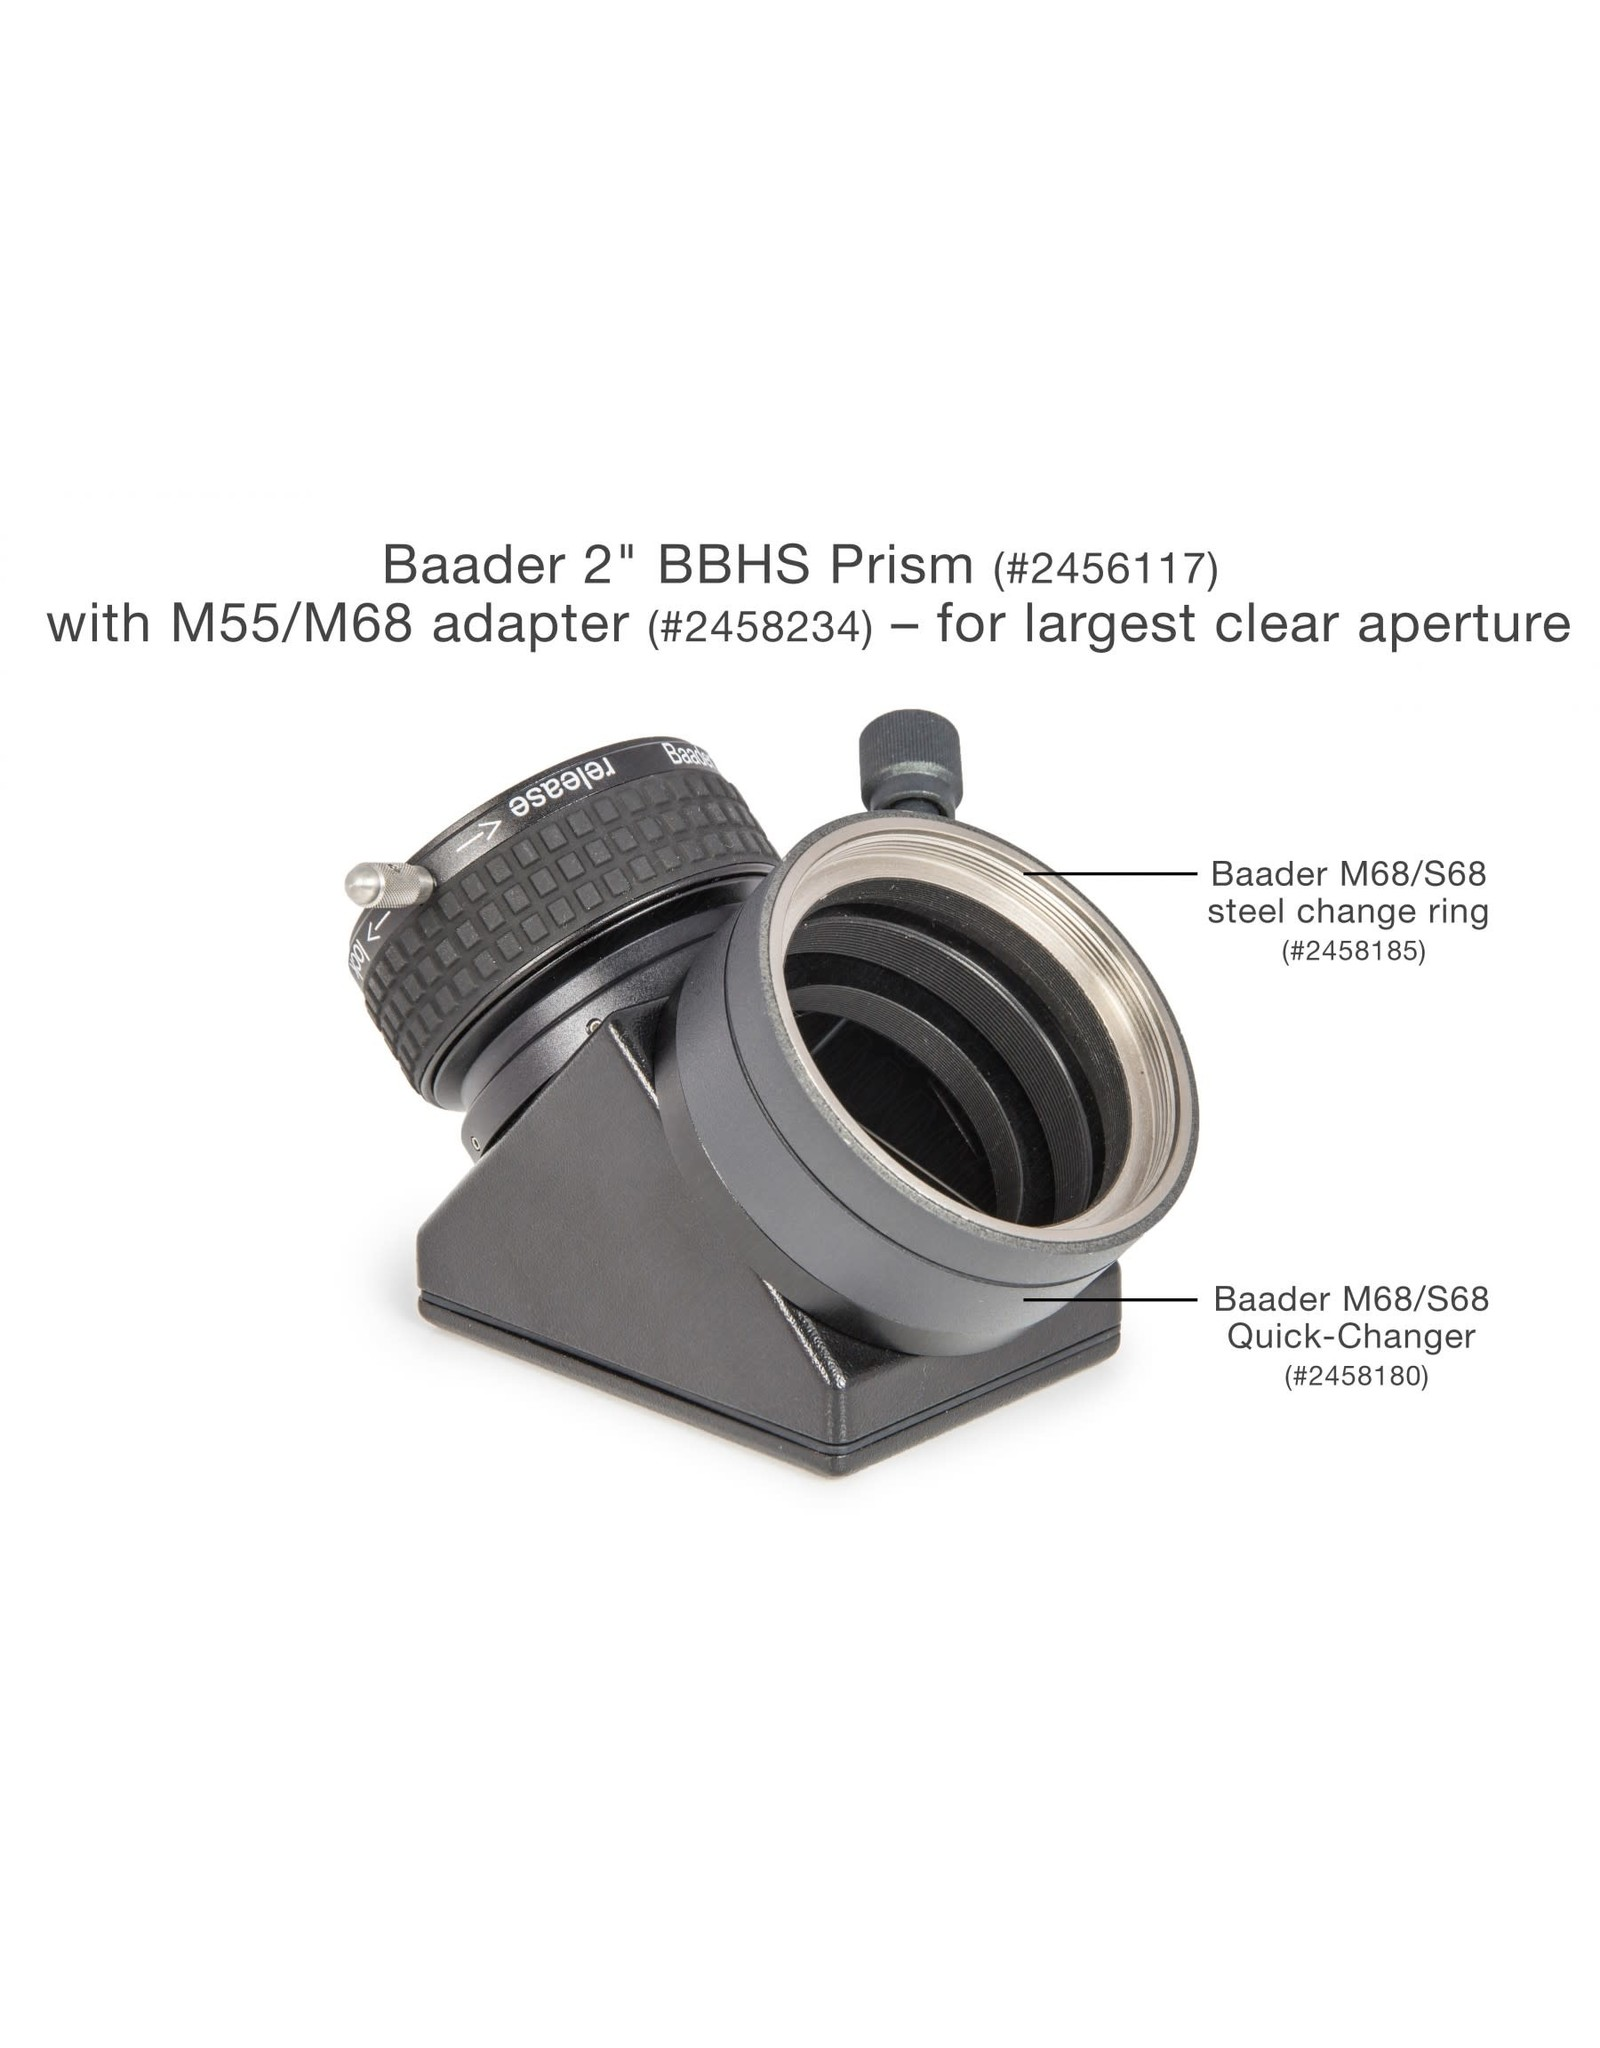 Baader Planetarium Baader M68/S68 steel change ring to fit Zeiss adapter system (dovetail-ring only)